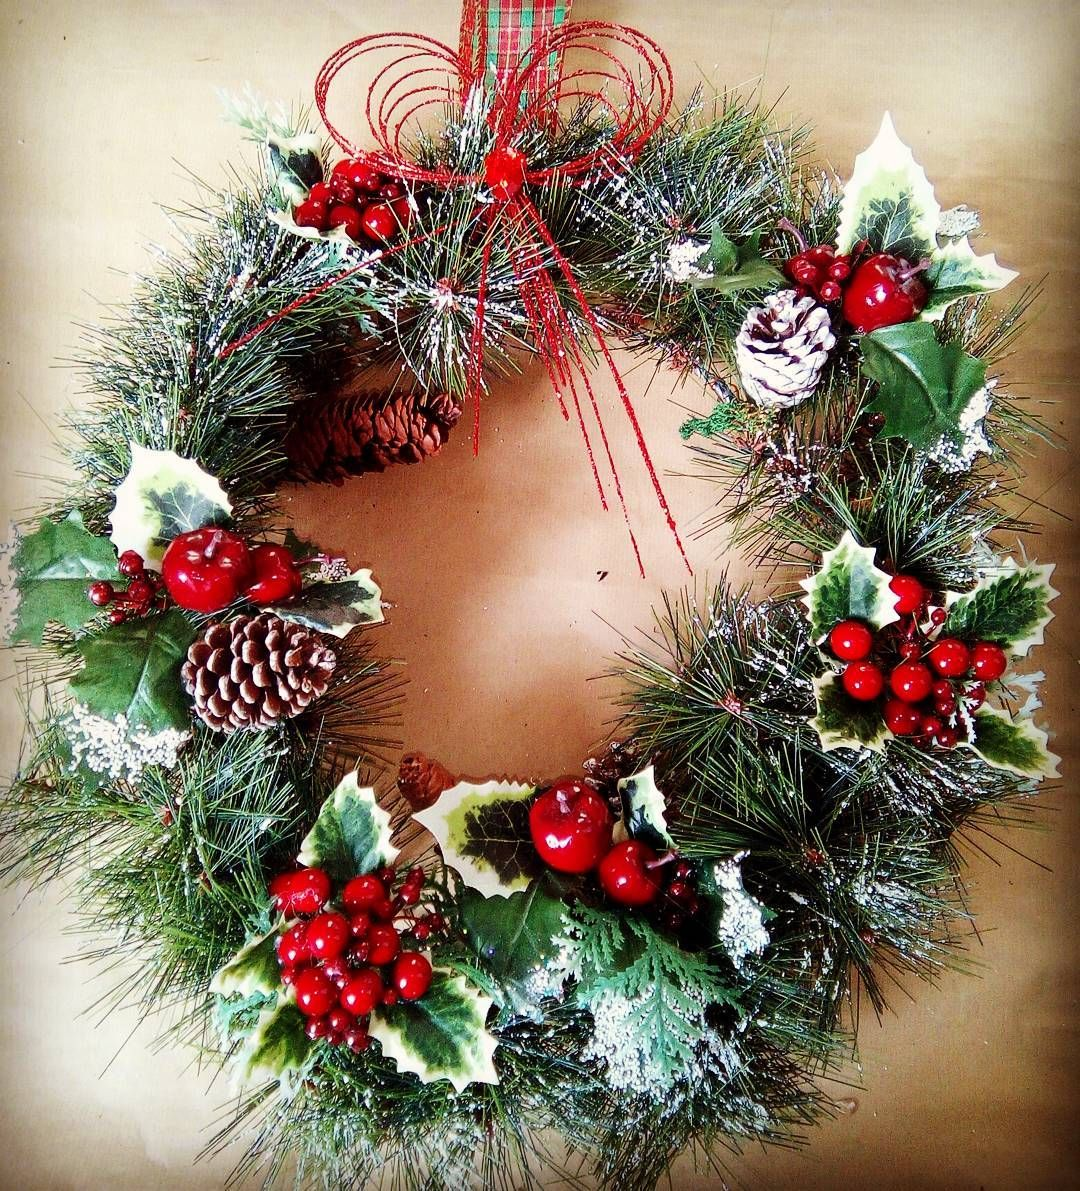 Only 47 days until the main event  #christmas #christmasdecor #traditional #christmashome #decorideas #handemadechristmas #wreath #spruce #pinecones #holly #availabletoorder #artificialwreaths #instachristmas